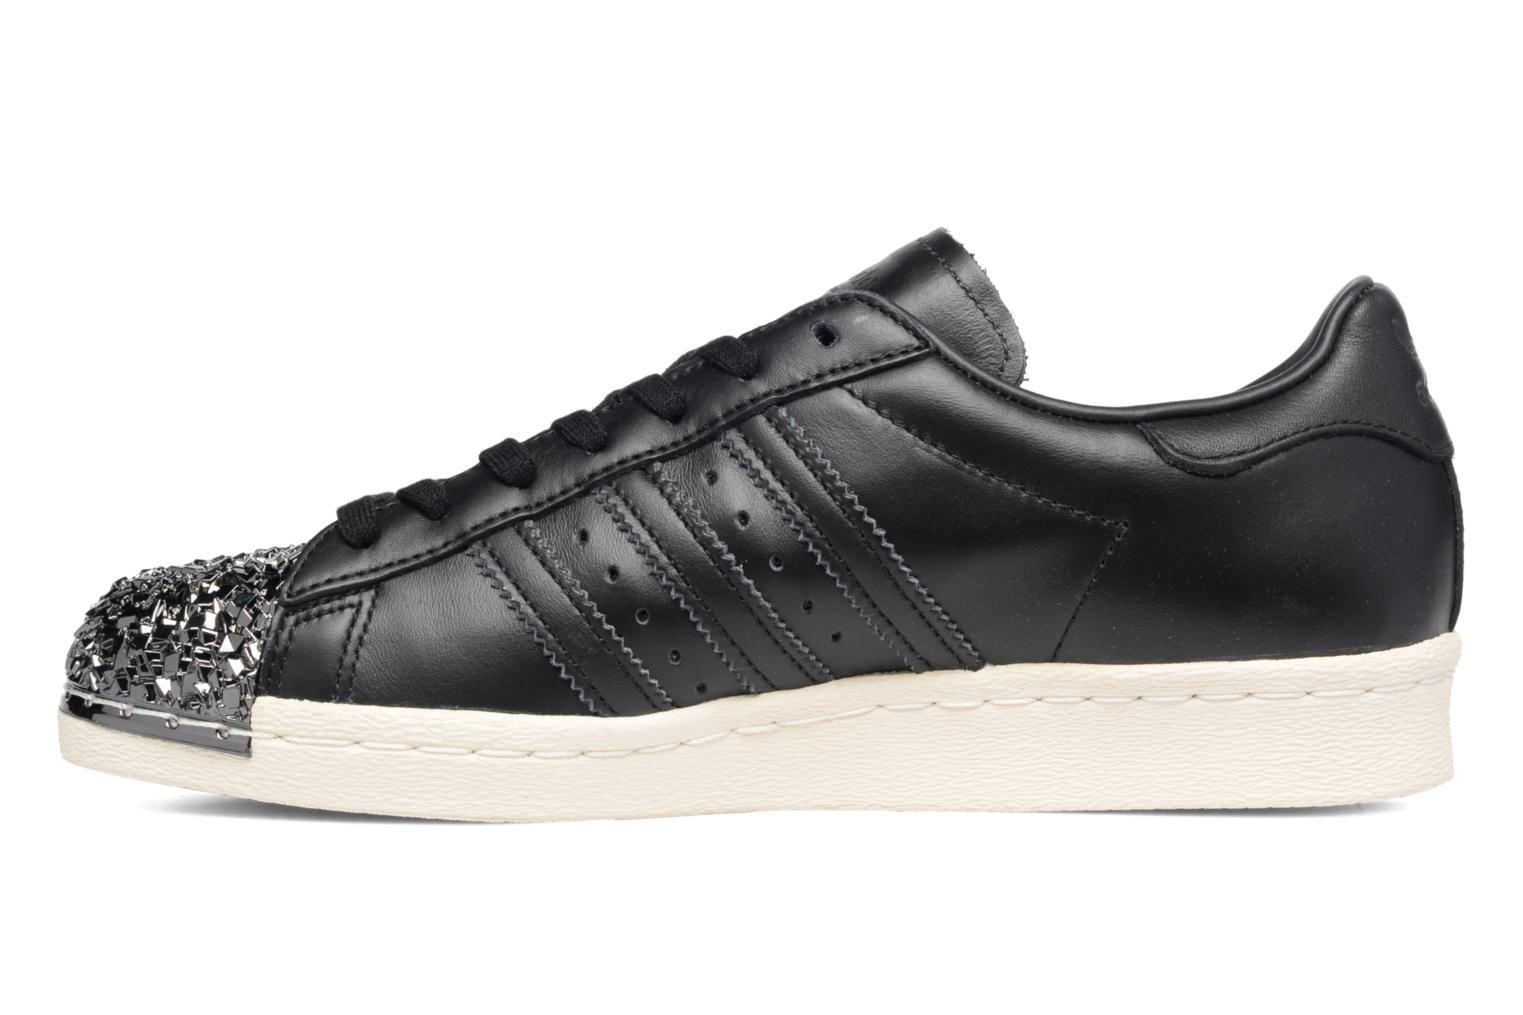 Superstar 80S 3D Mt W Noiess/Noiess/Blacas